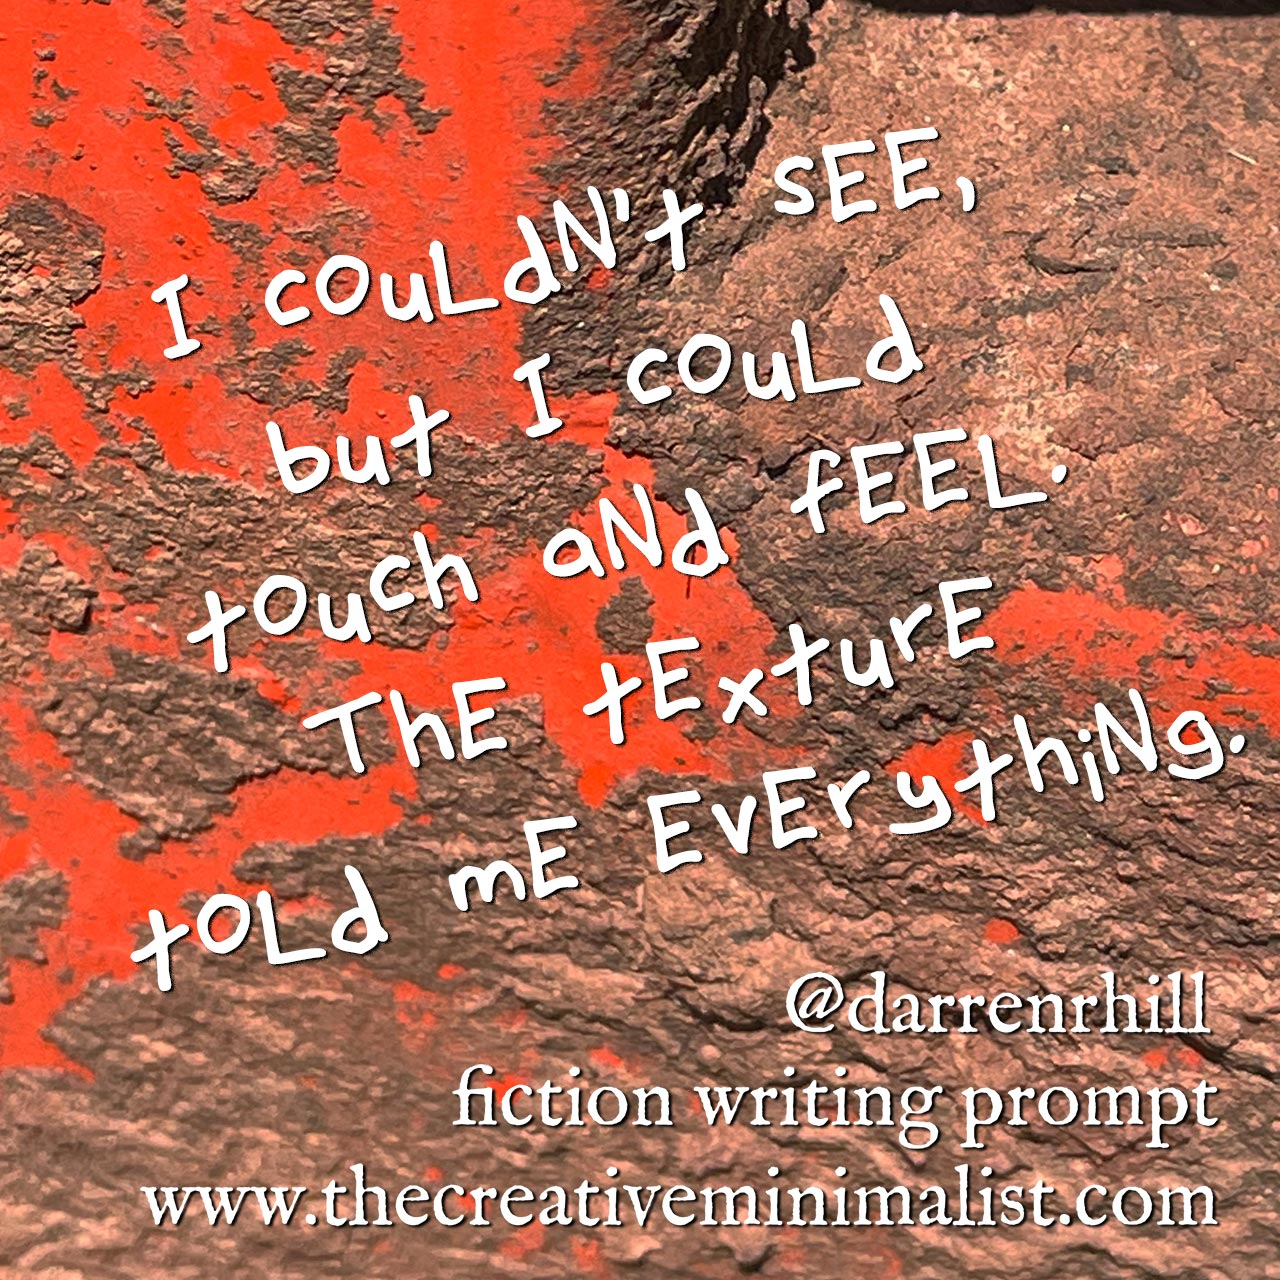 I couldn't see, but I could touch and feel. The texture told me everything. - fiction writing prompt